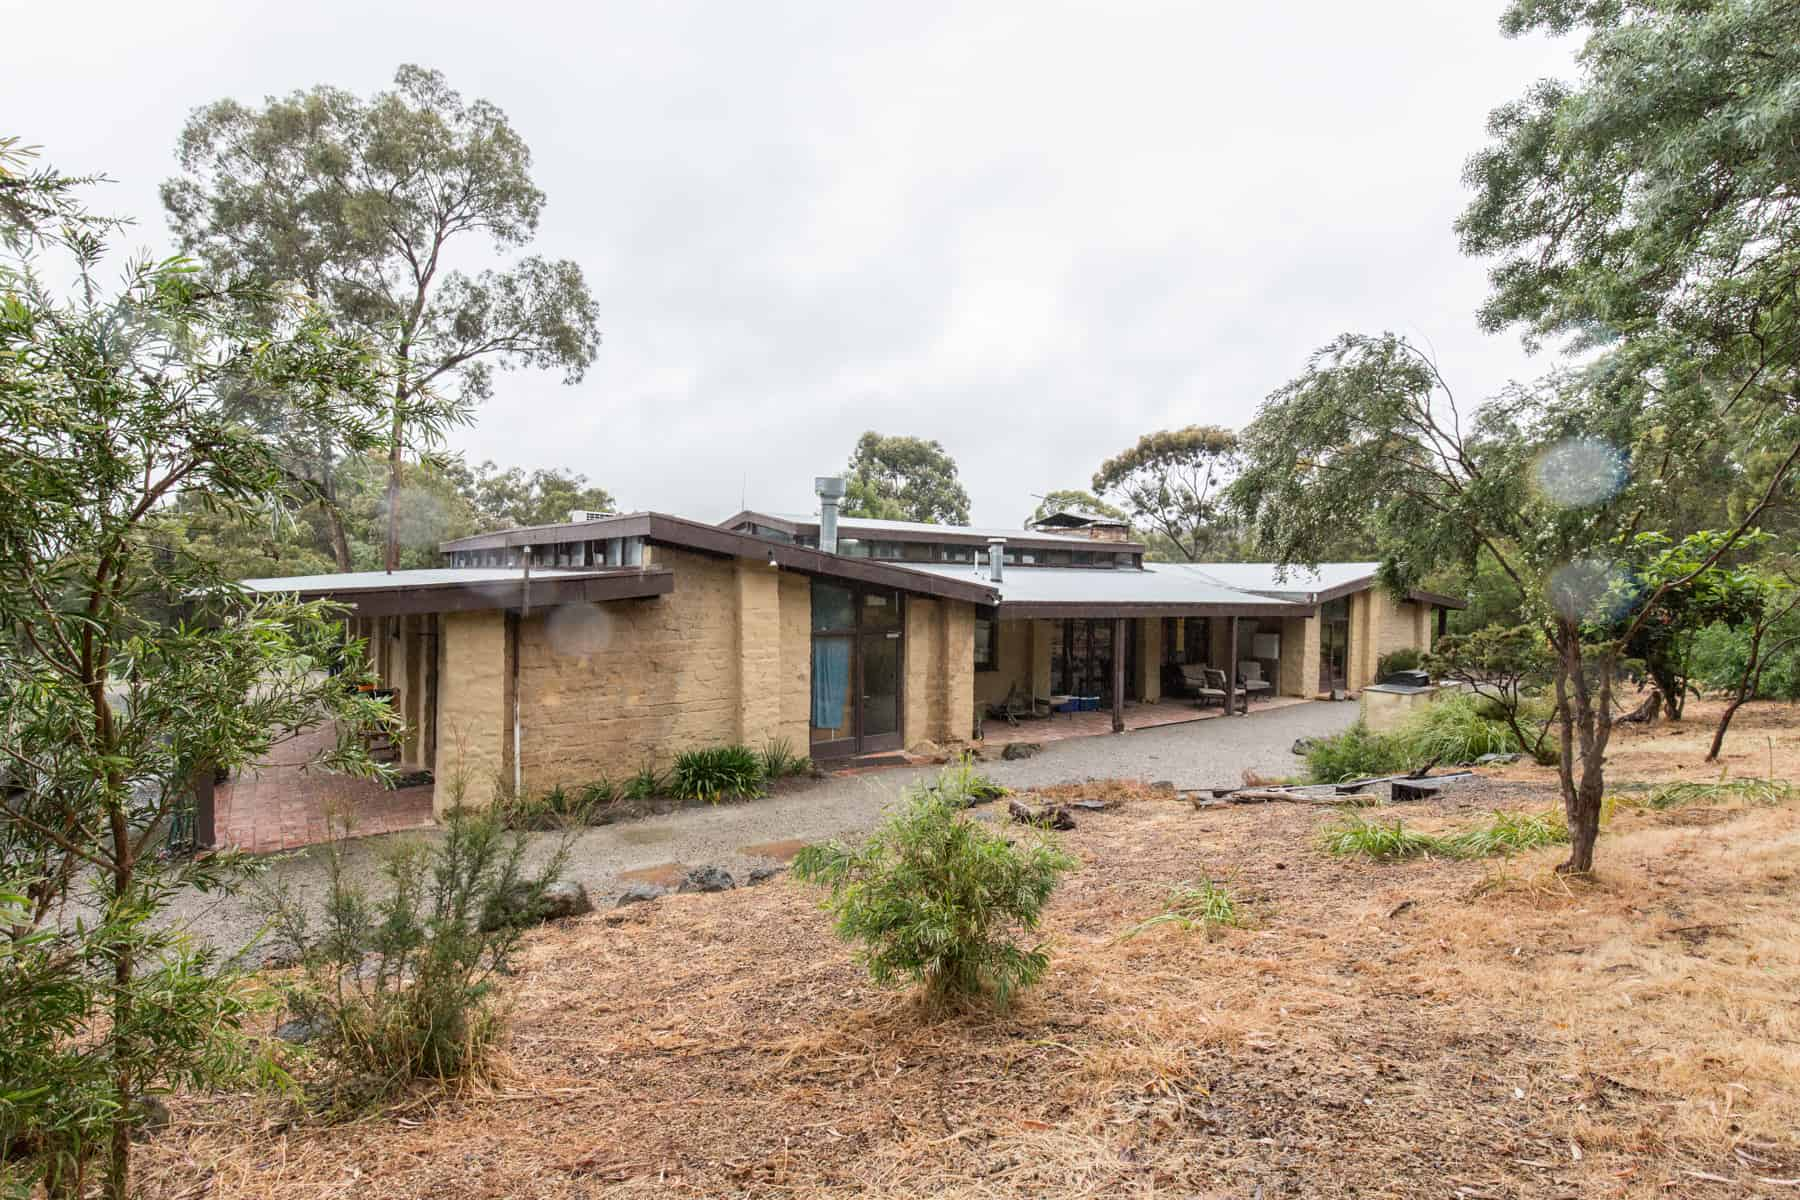 Coller house, 10 Eucalyptus Rd Eltham. VIC 3095. Designed by Alistair Knox, plan dated January 1974, job number 720